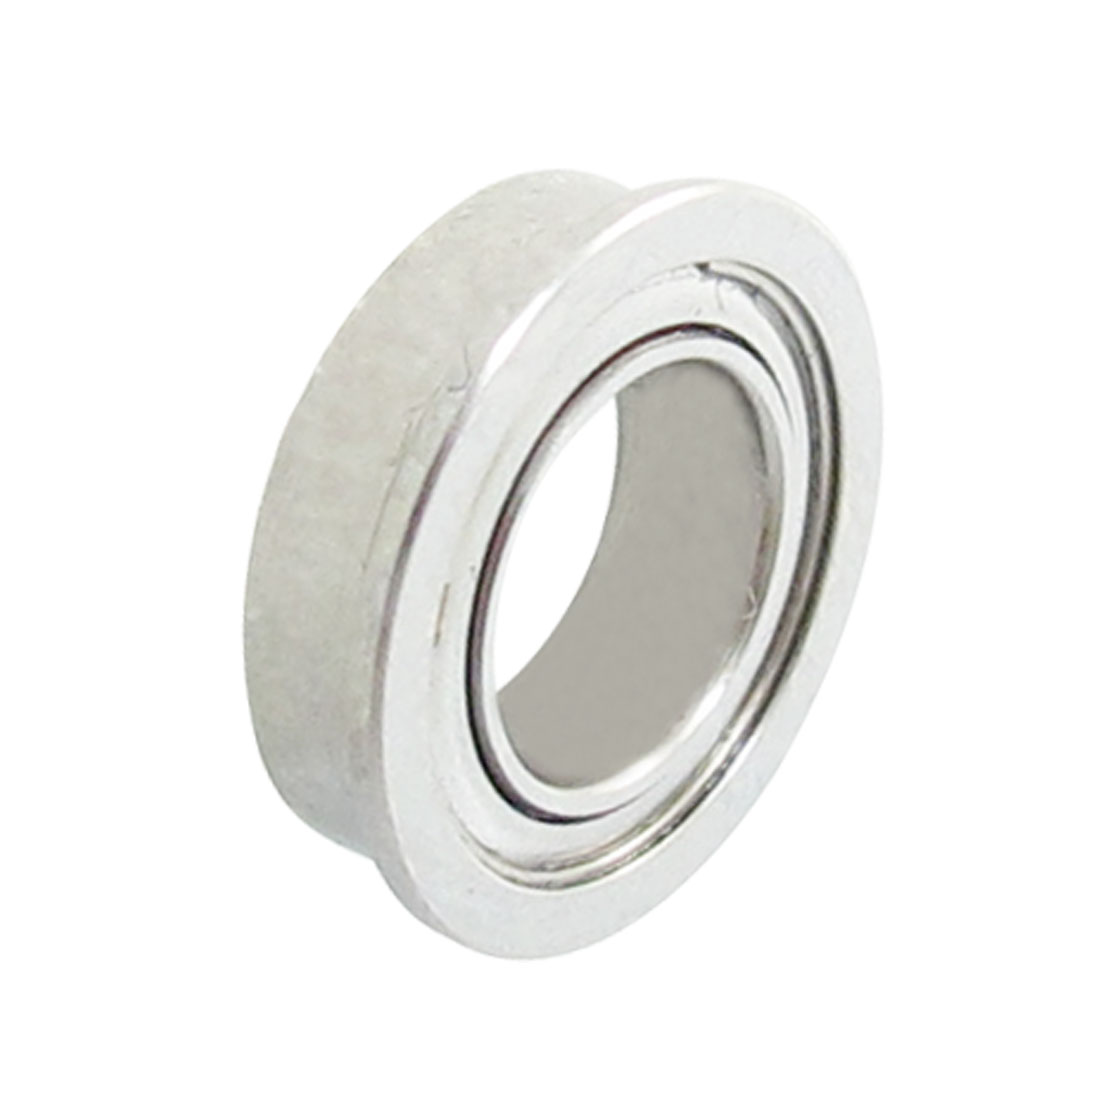 Stainless Steel 10mm x 6mm x 3mm Double Sealed Flange Ball Bearing